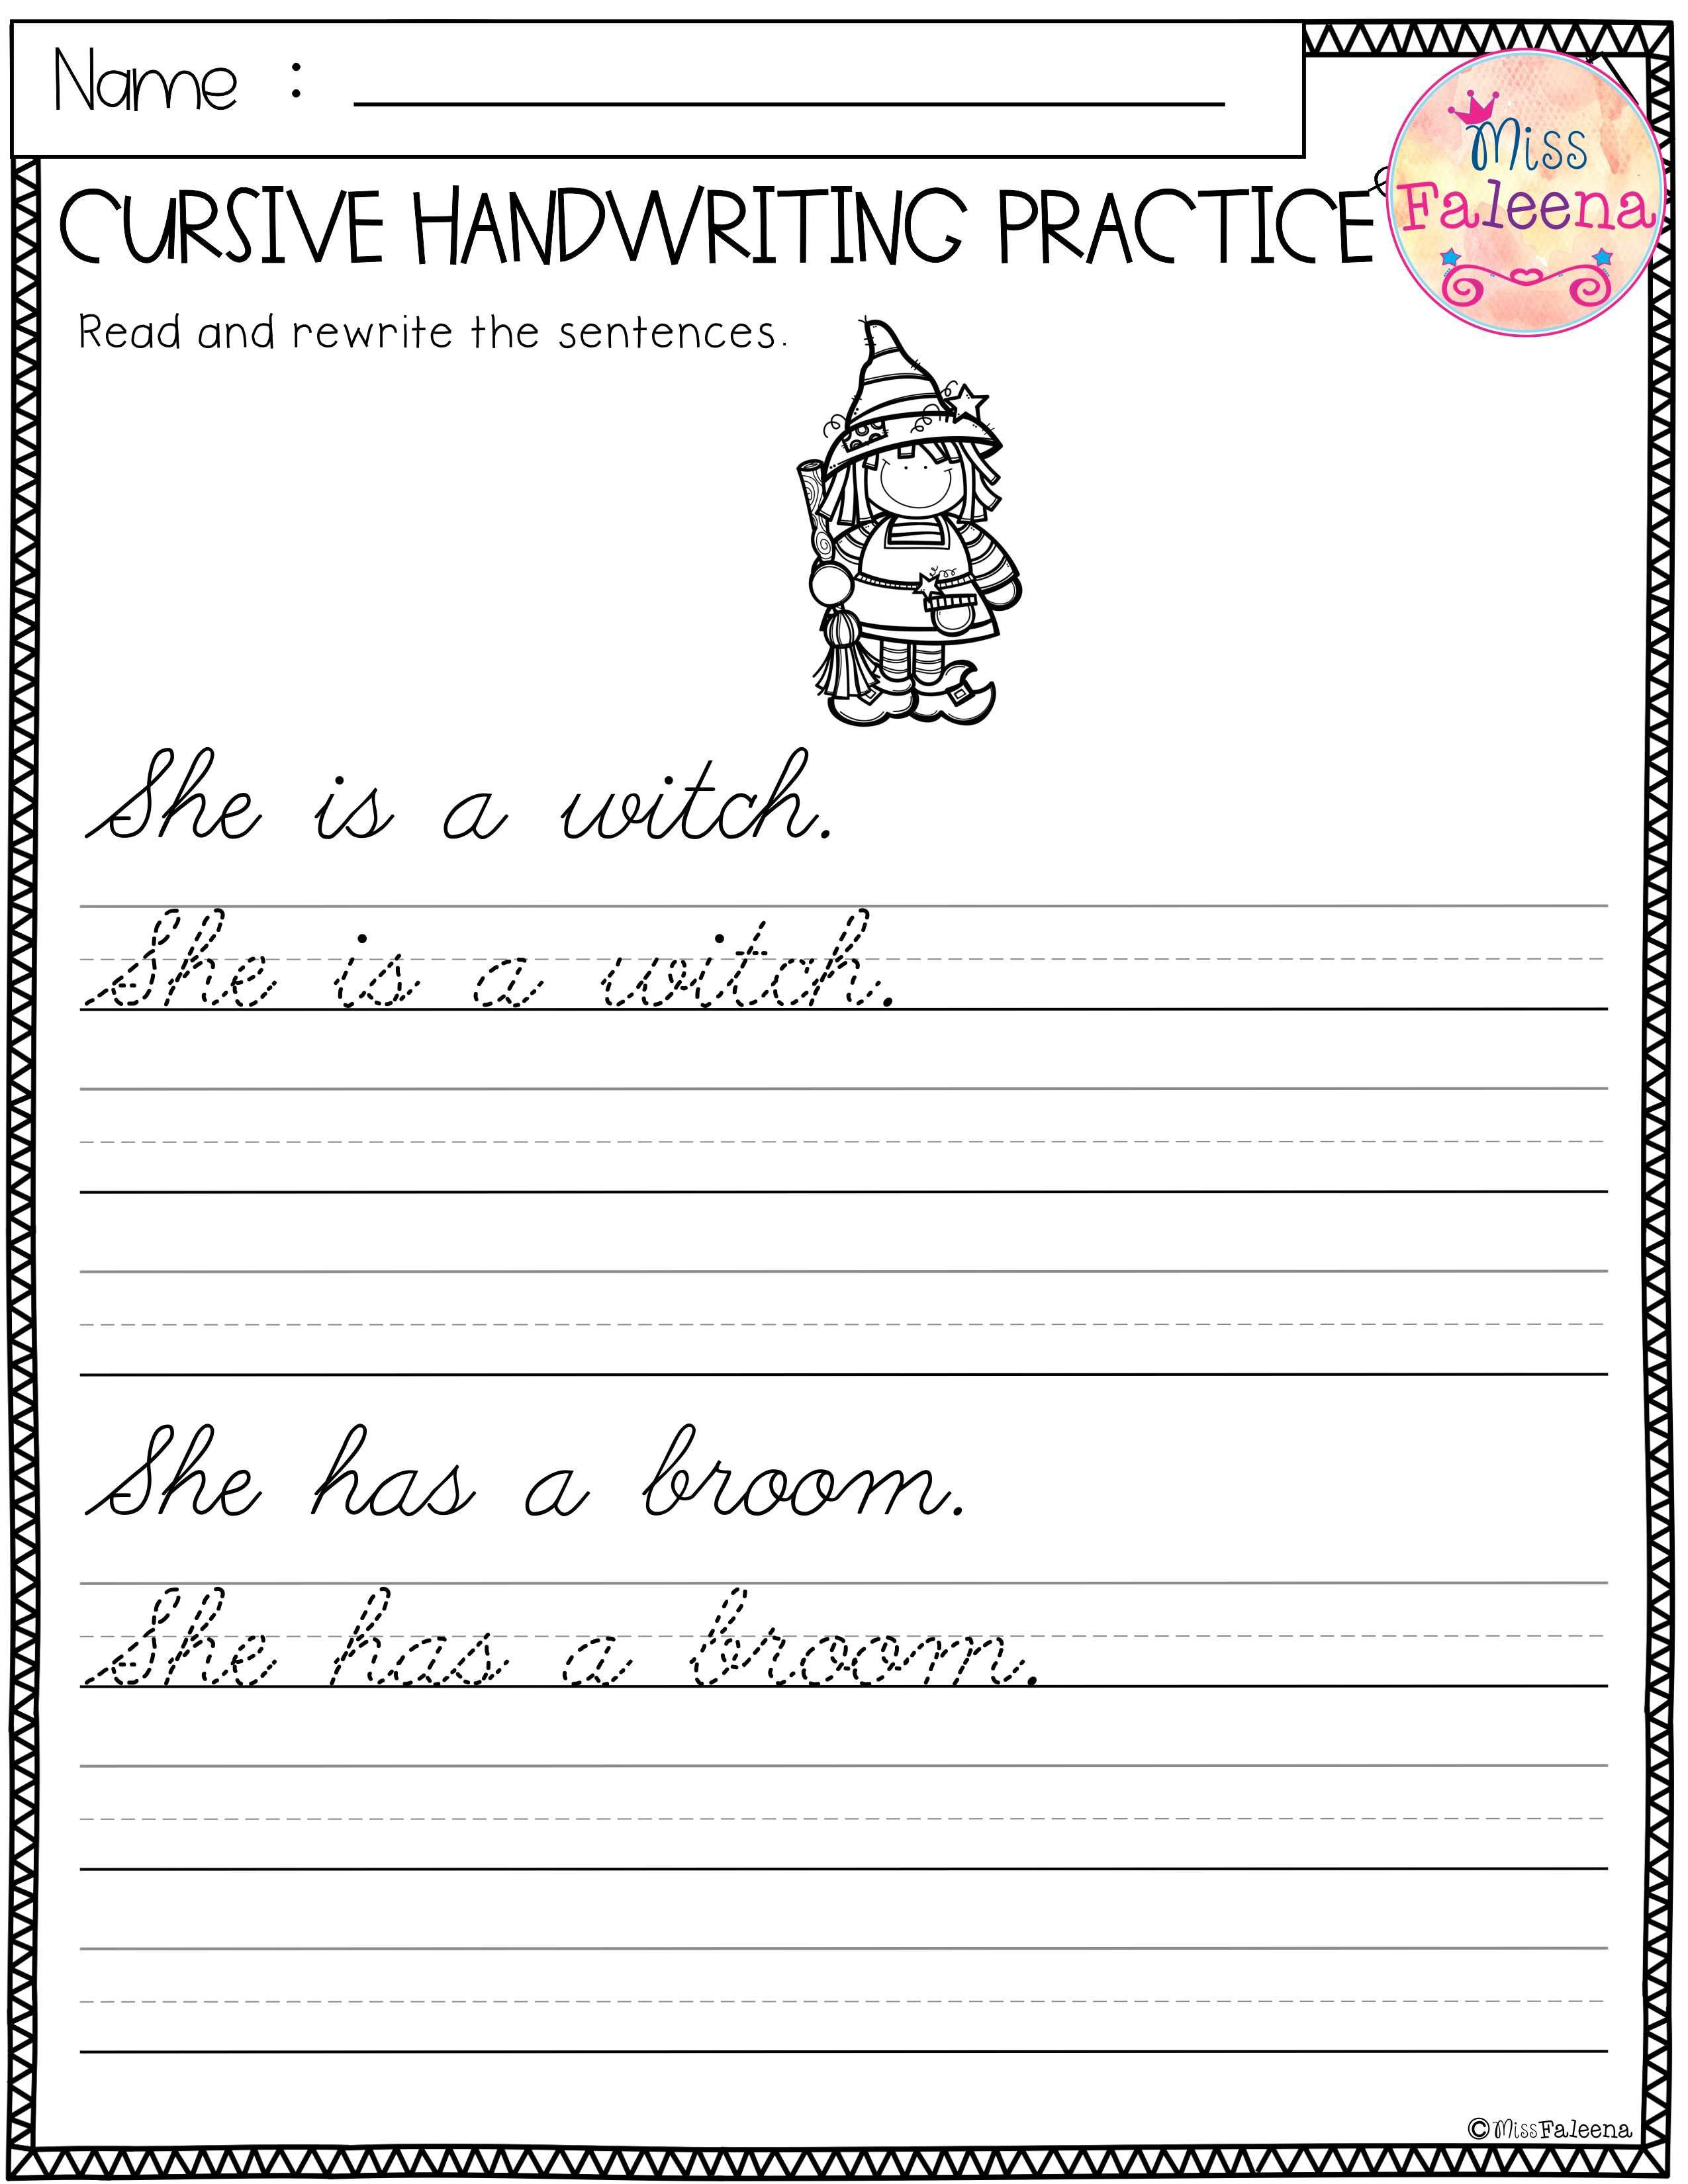 hight resolution of Halloween Cursive Handwriting Practice   Cursive handwriting practice